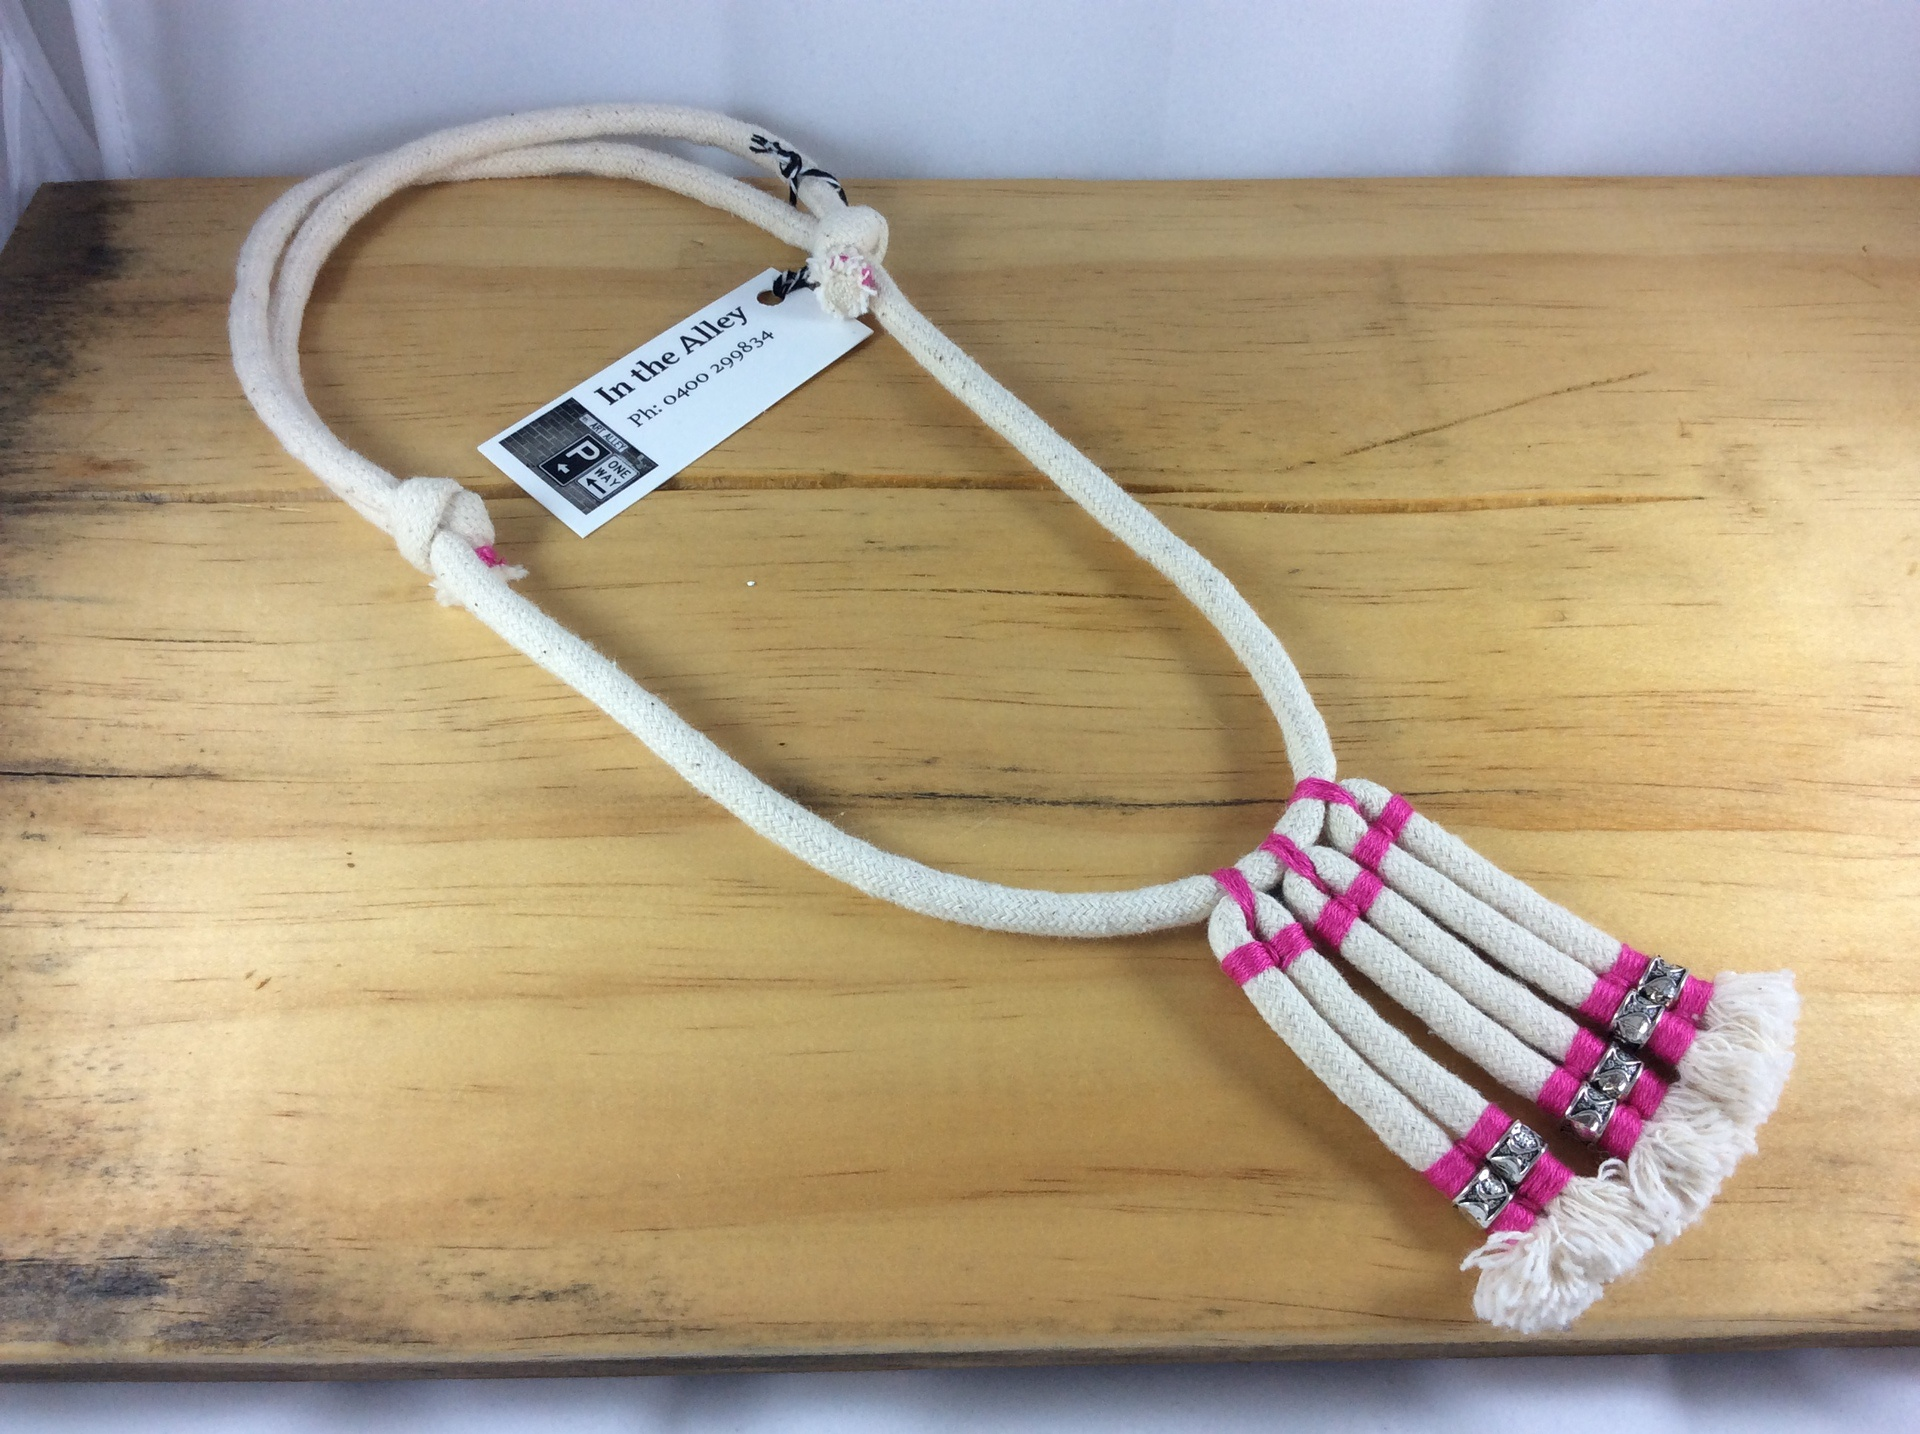 Syx Frayed Lines 'The Original' Frayed Cotton Necklace in Hot Pink